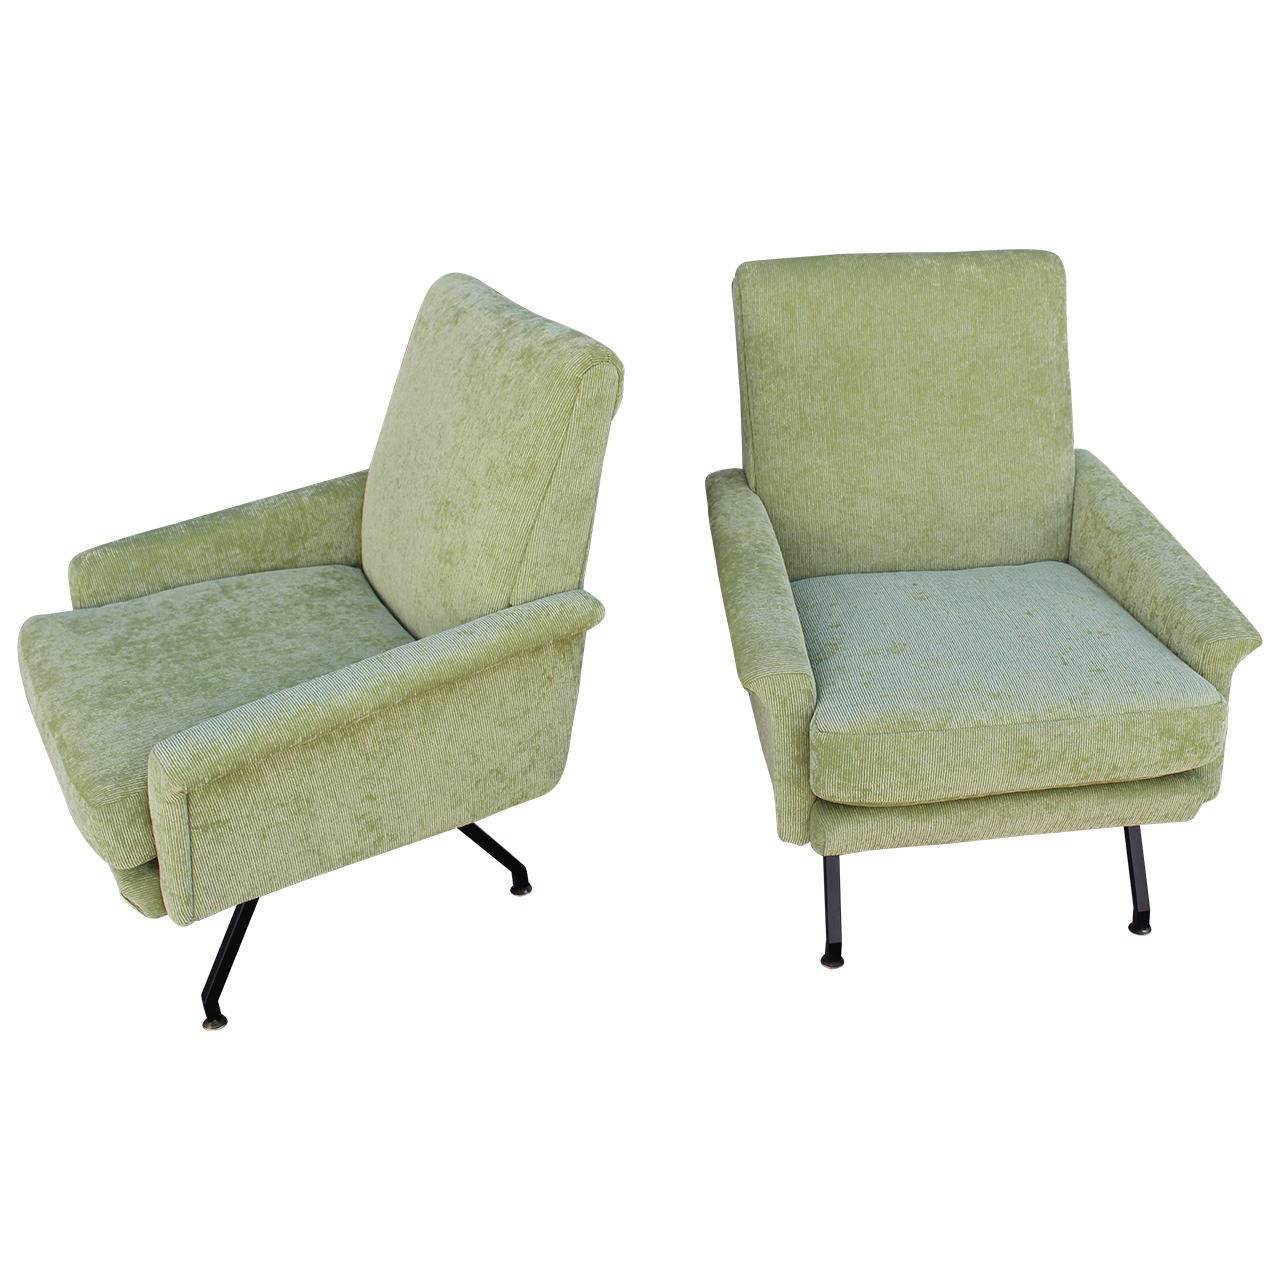 Italian Pair of Lounge Chairs 1